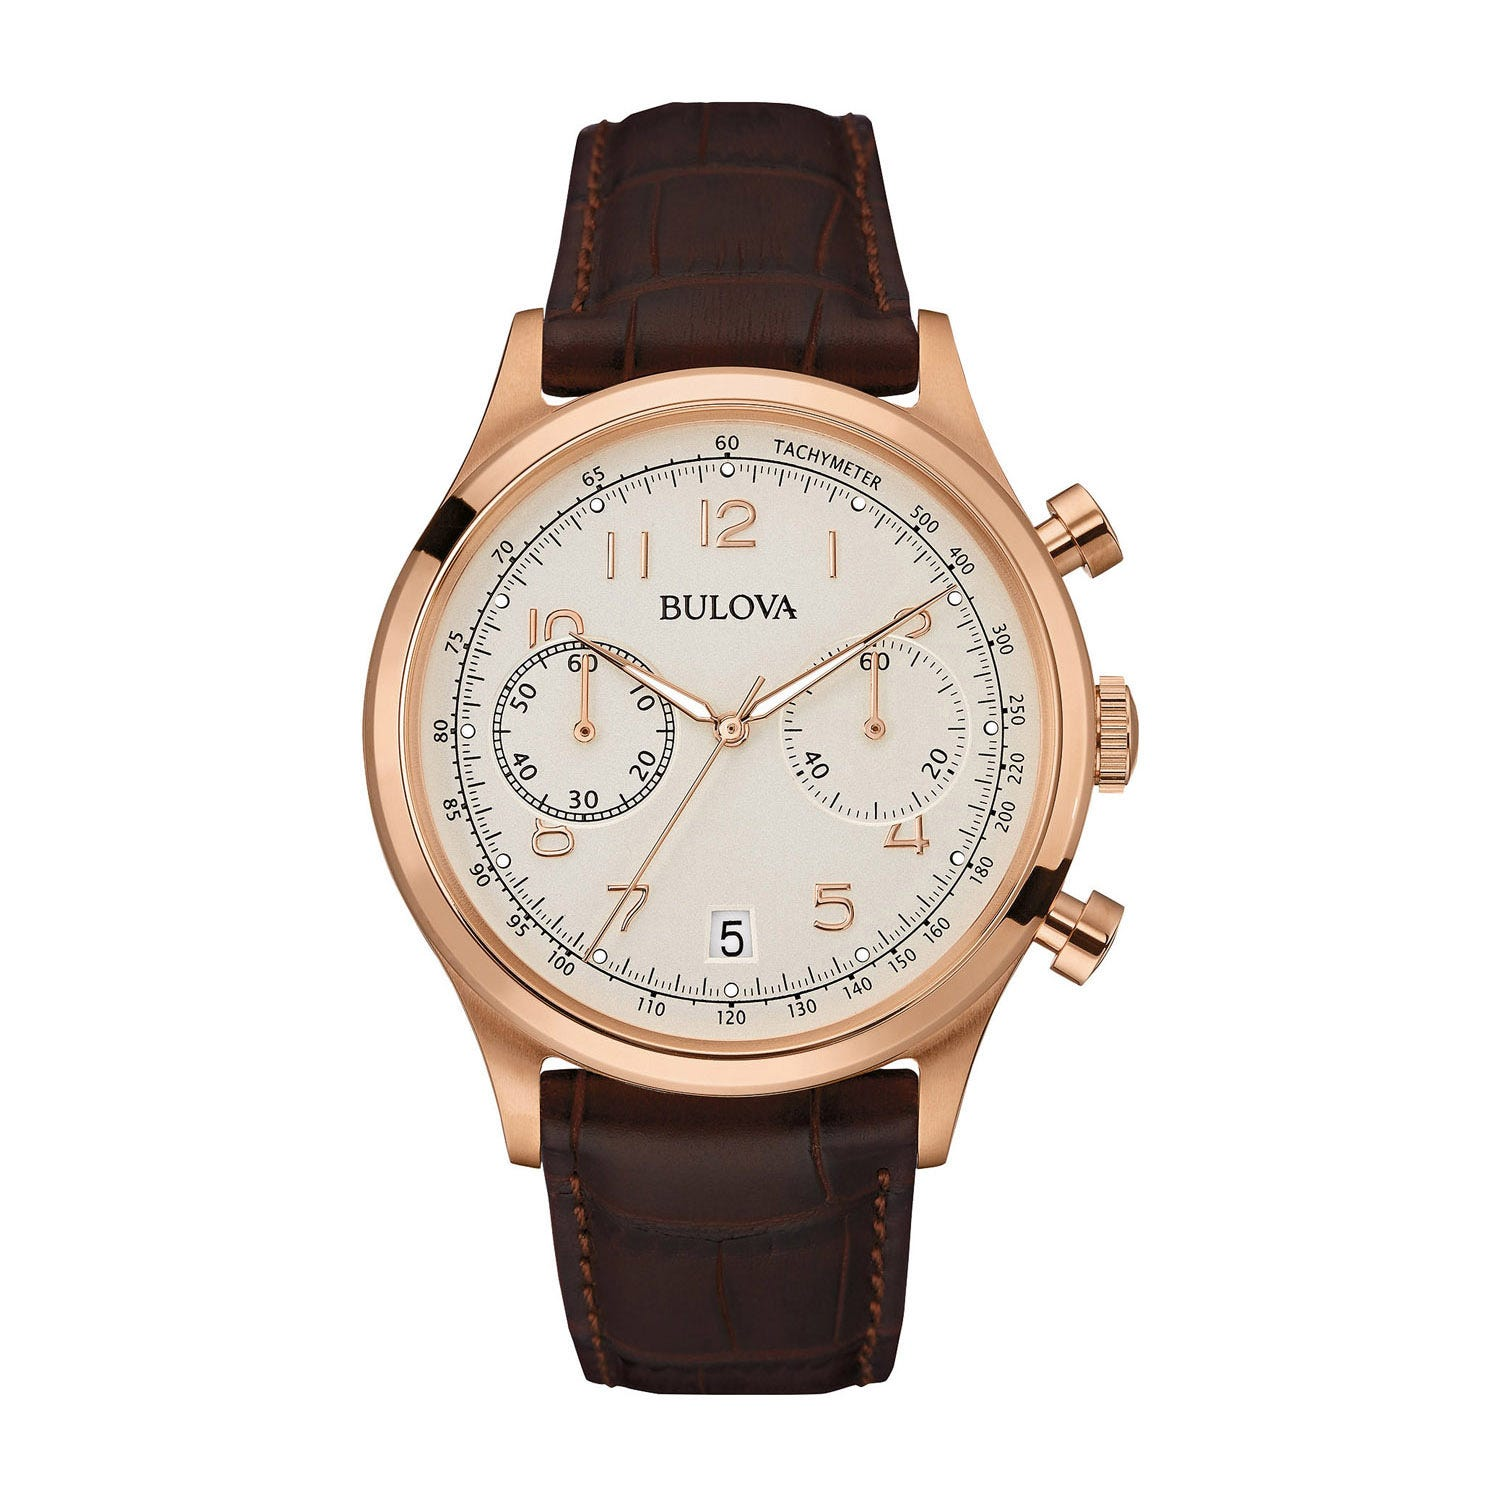 Bulova Classic Vintage men's chronograph brown leather strap watch